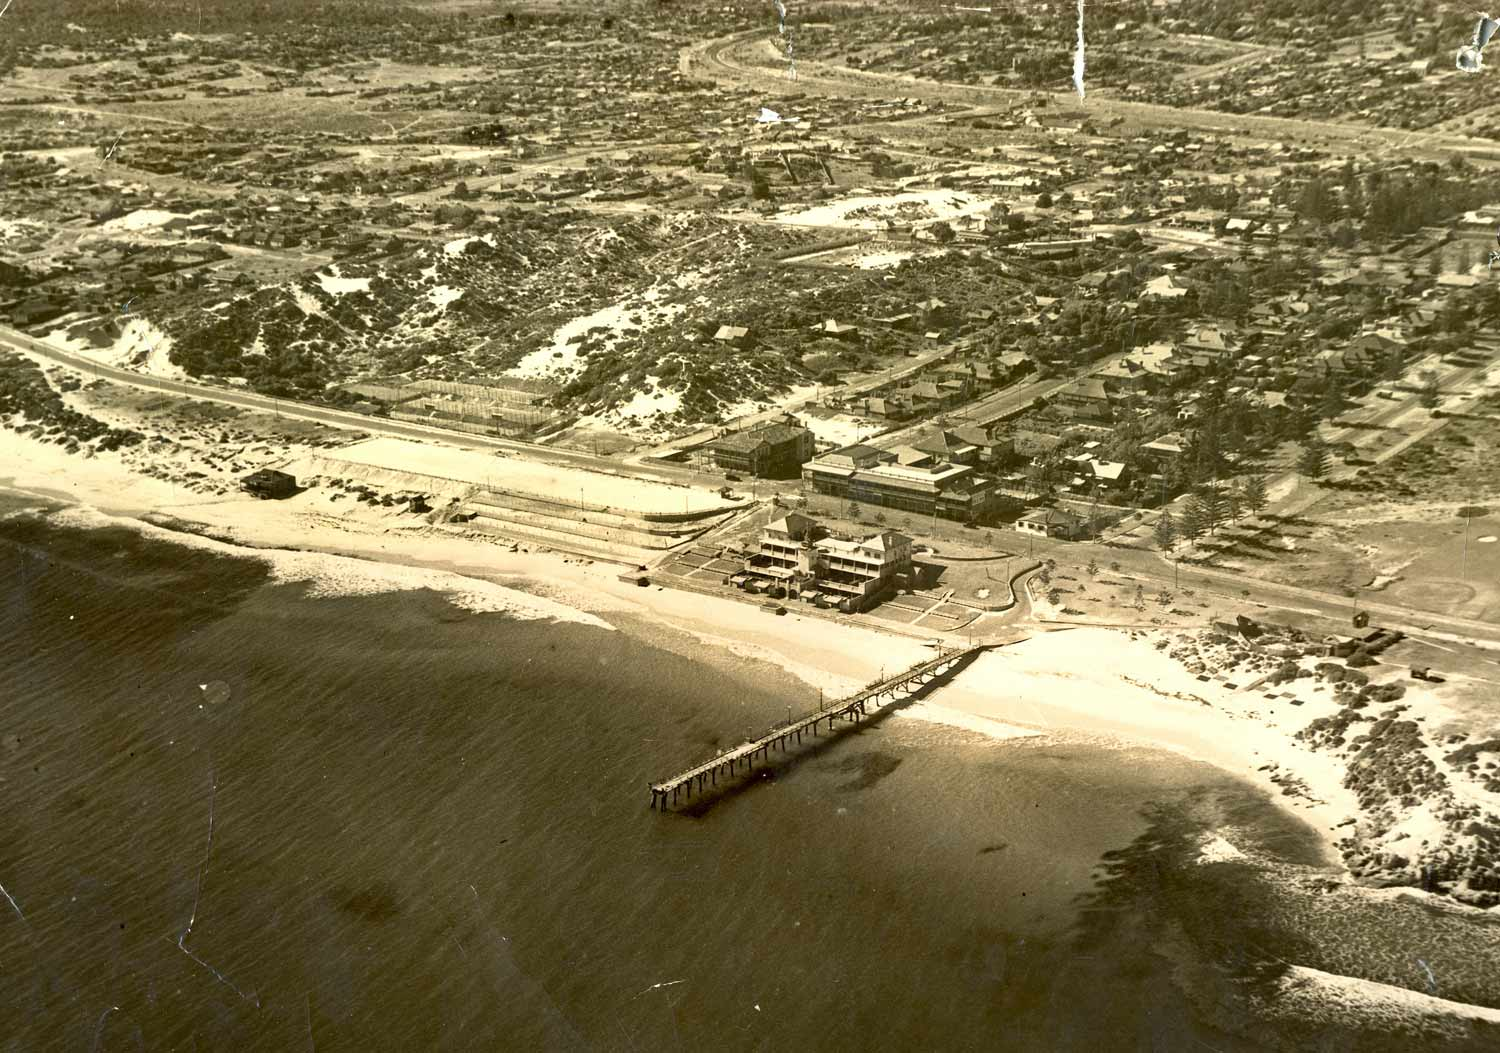 1935 Aerial view of Cottesloe Beach